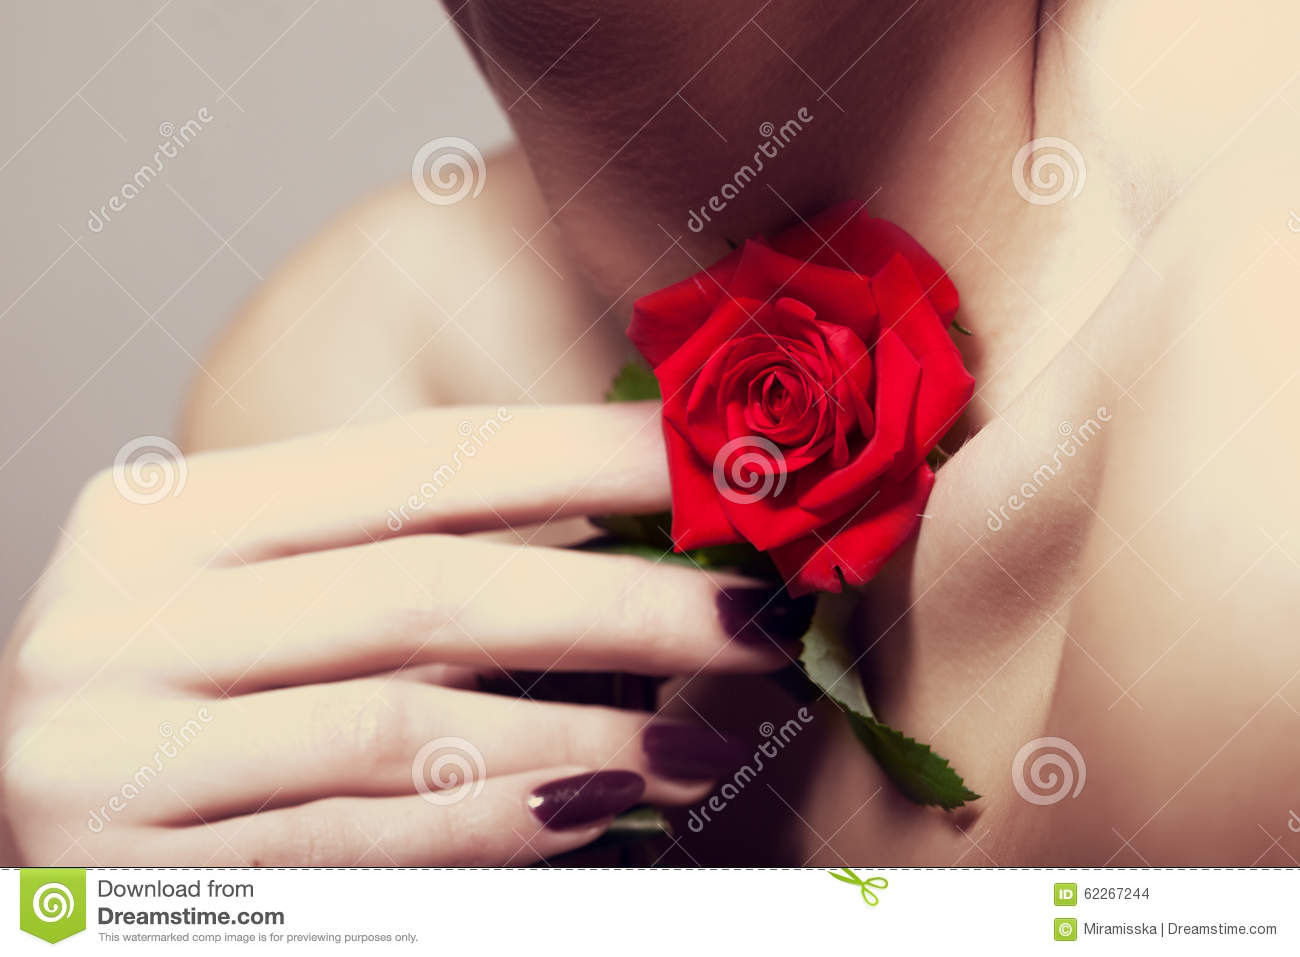 Beauty And Fashion. Women's Neck With A Jewelery Of Roses